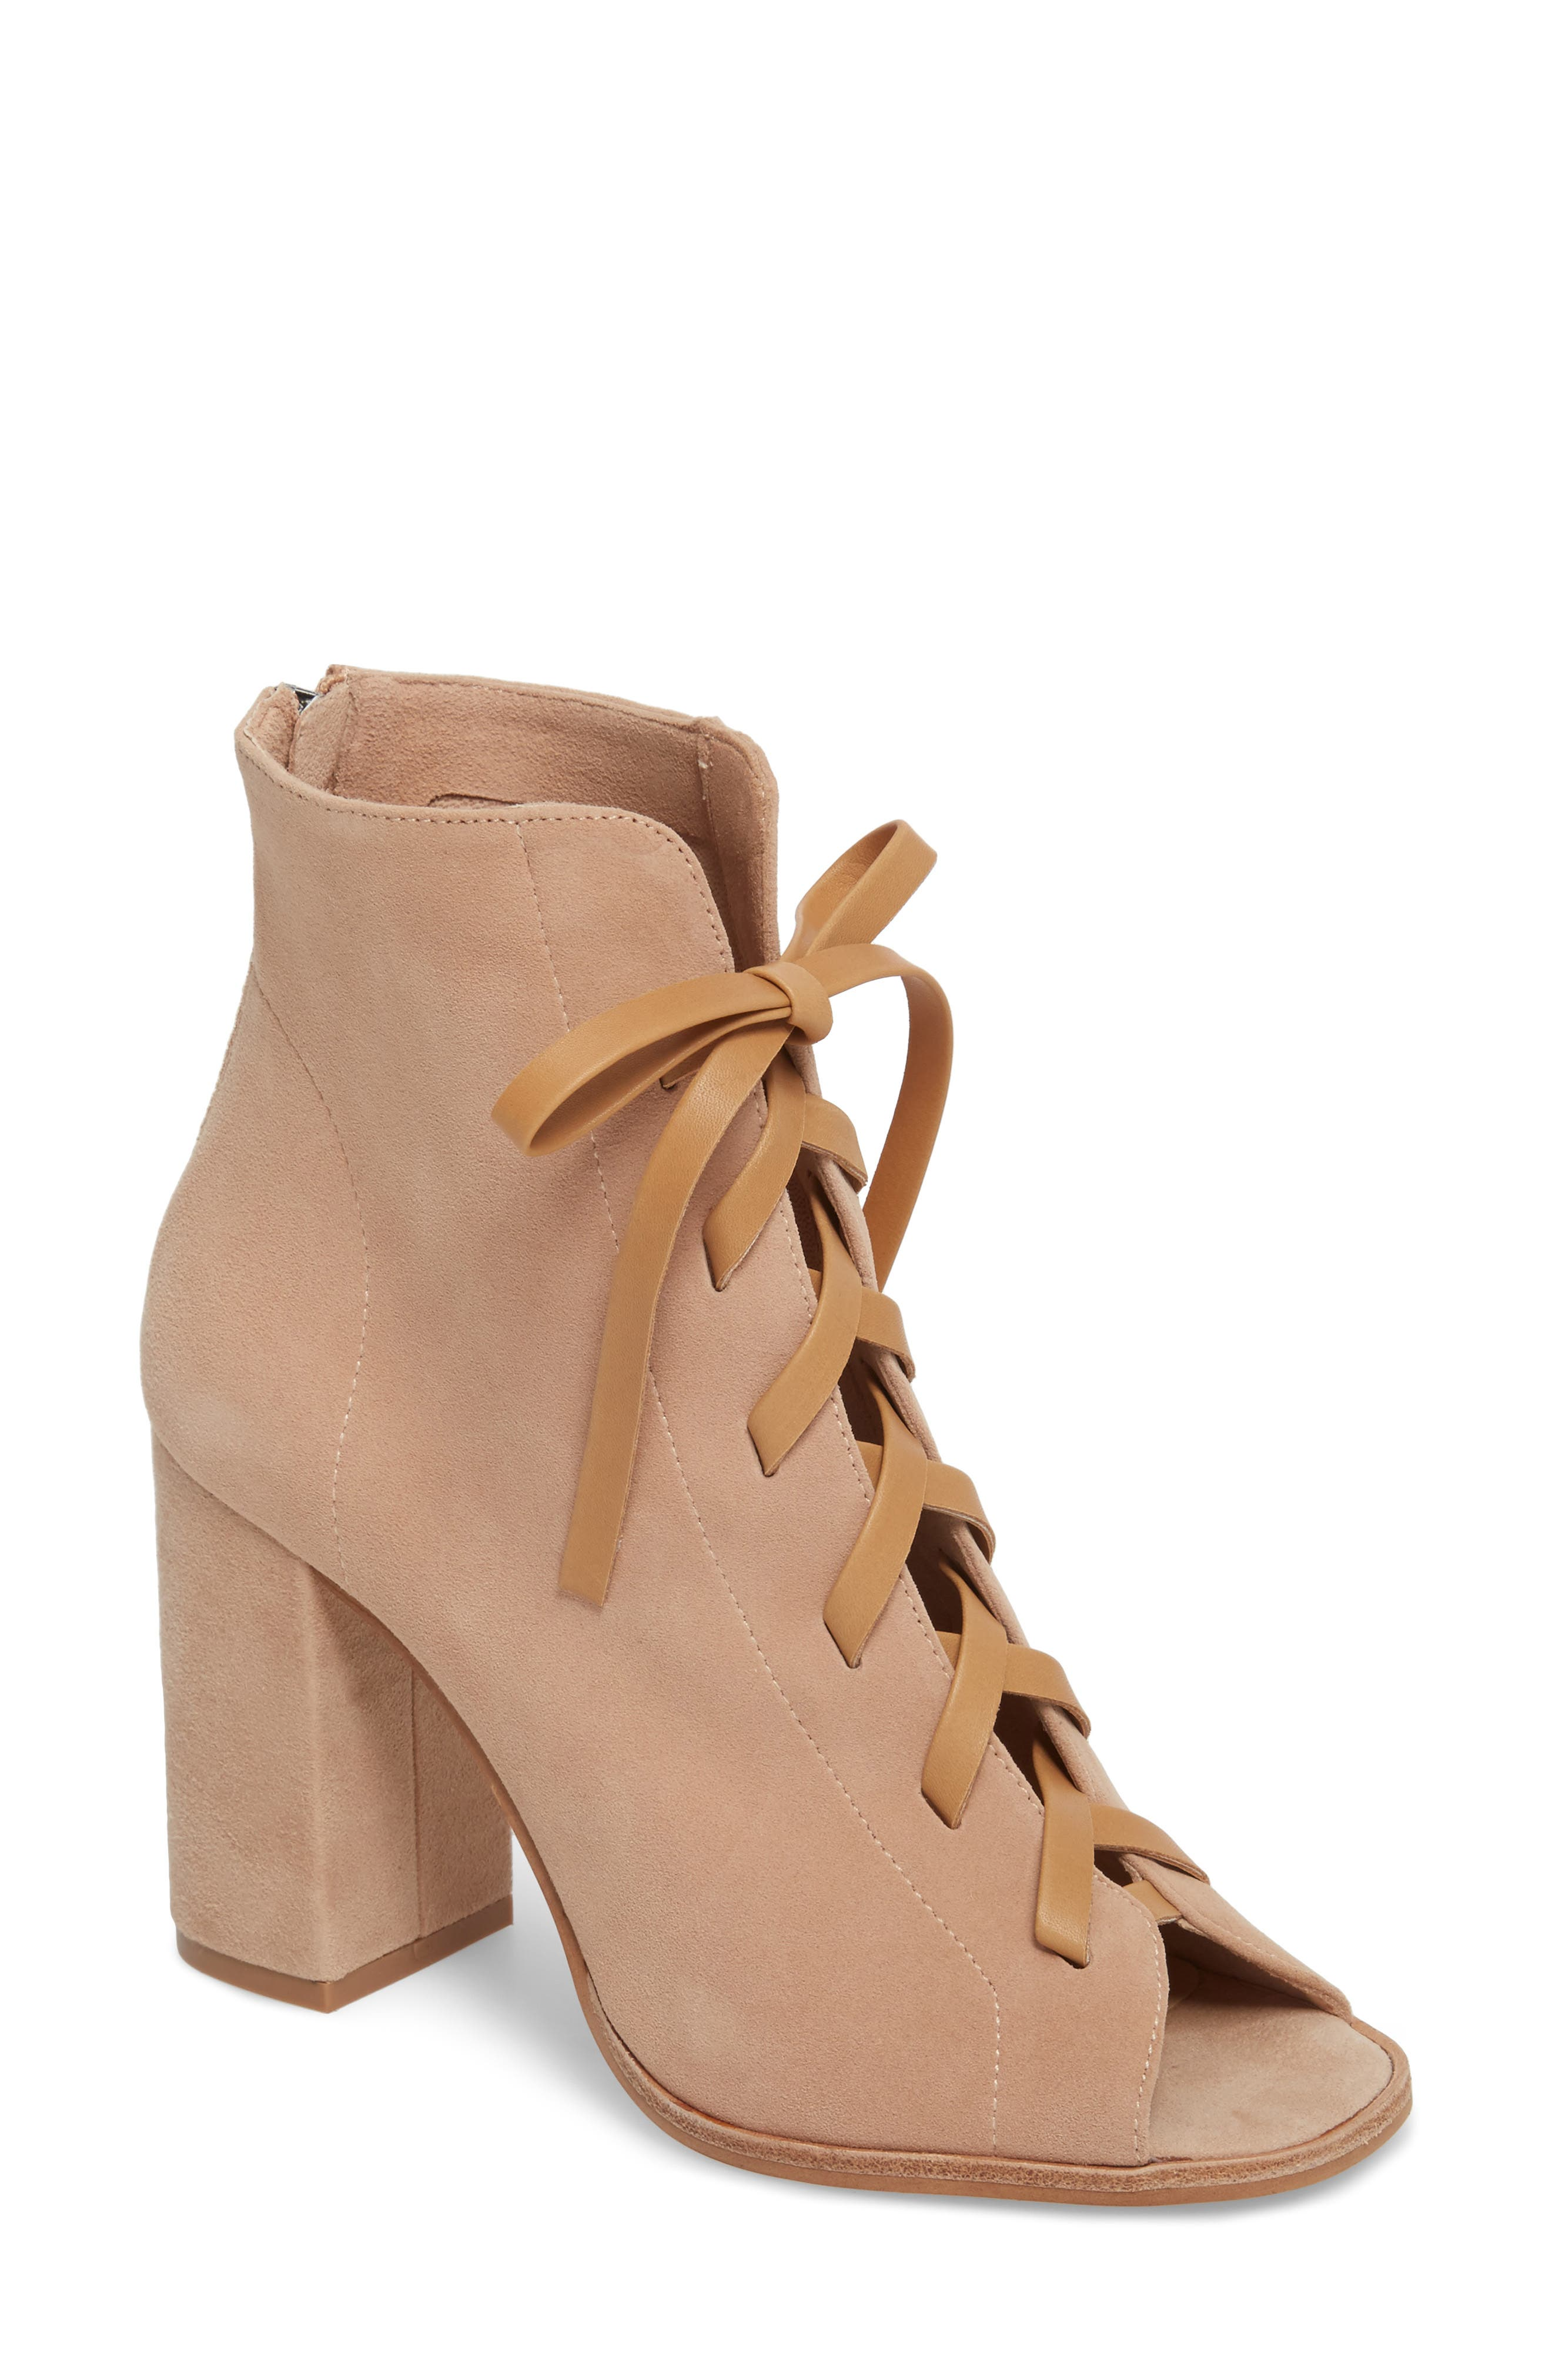 Layton Lace-Up Boot,                         Main,                         color, TIGERS EYE SUEDE